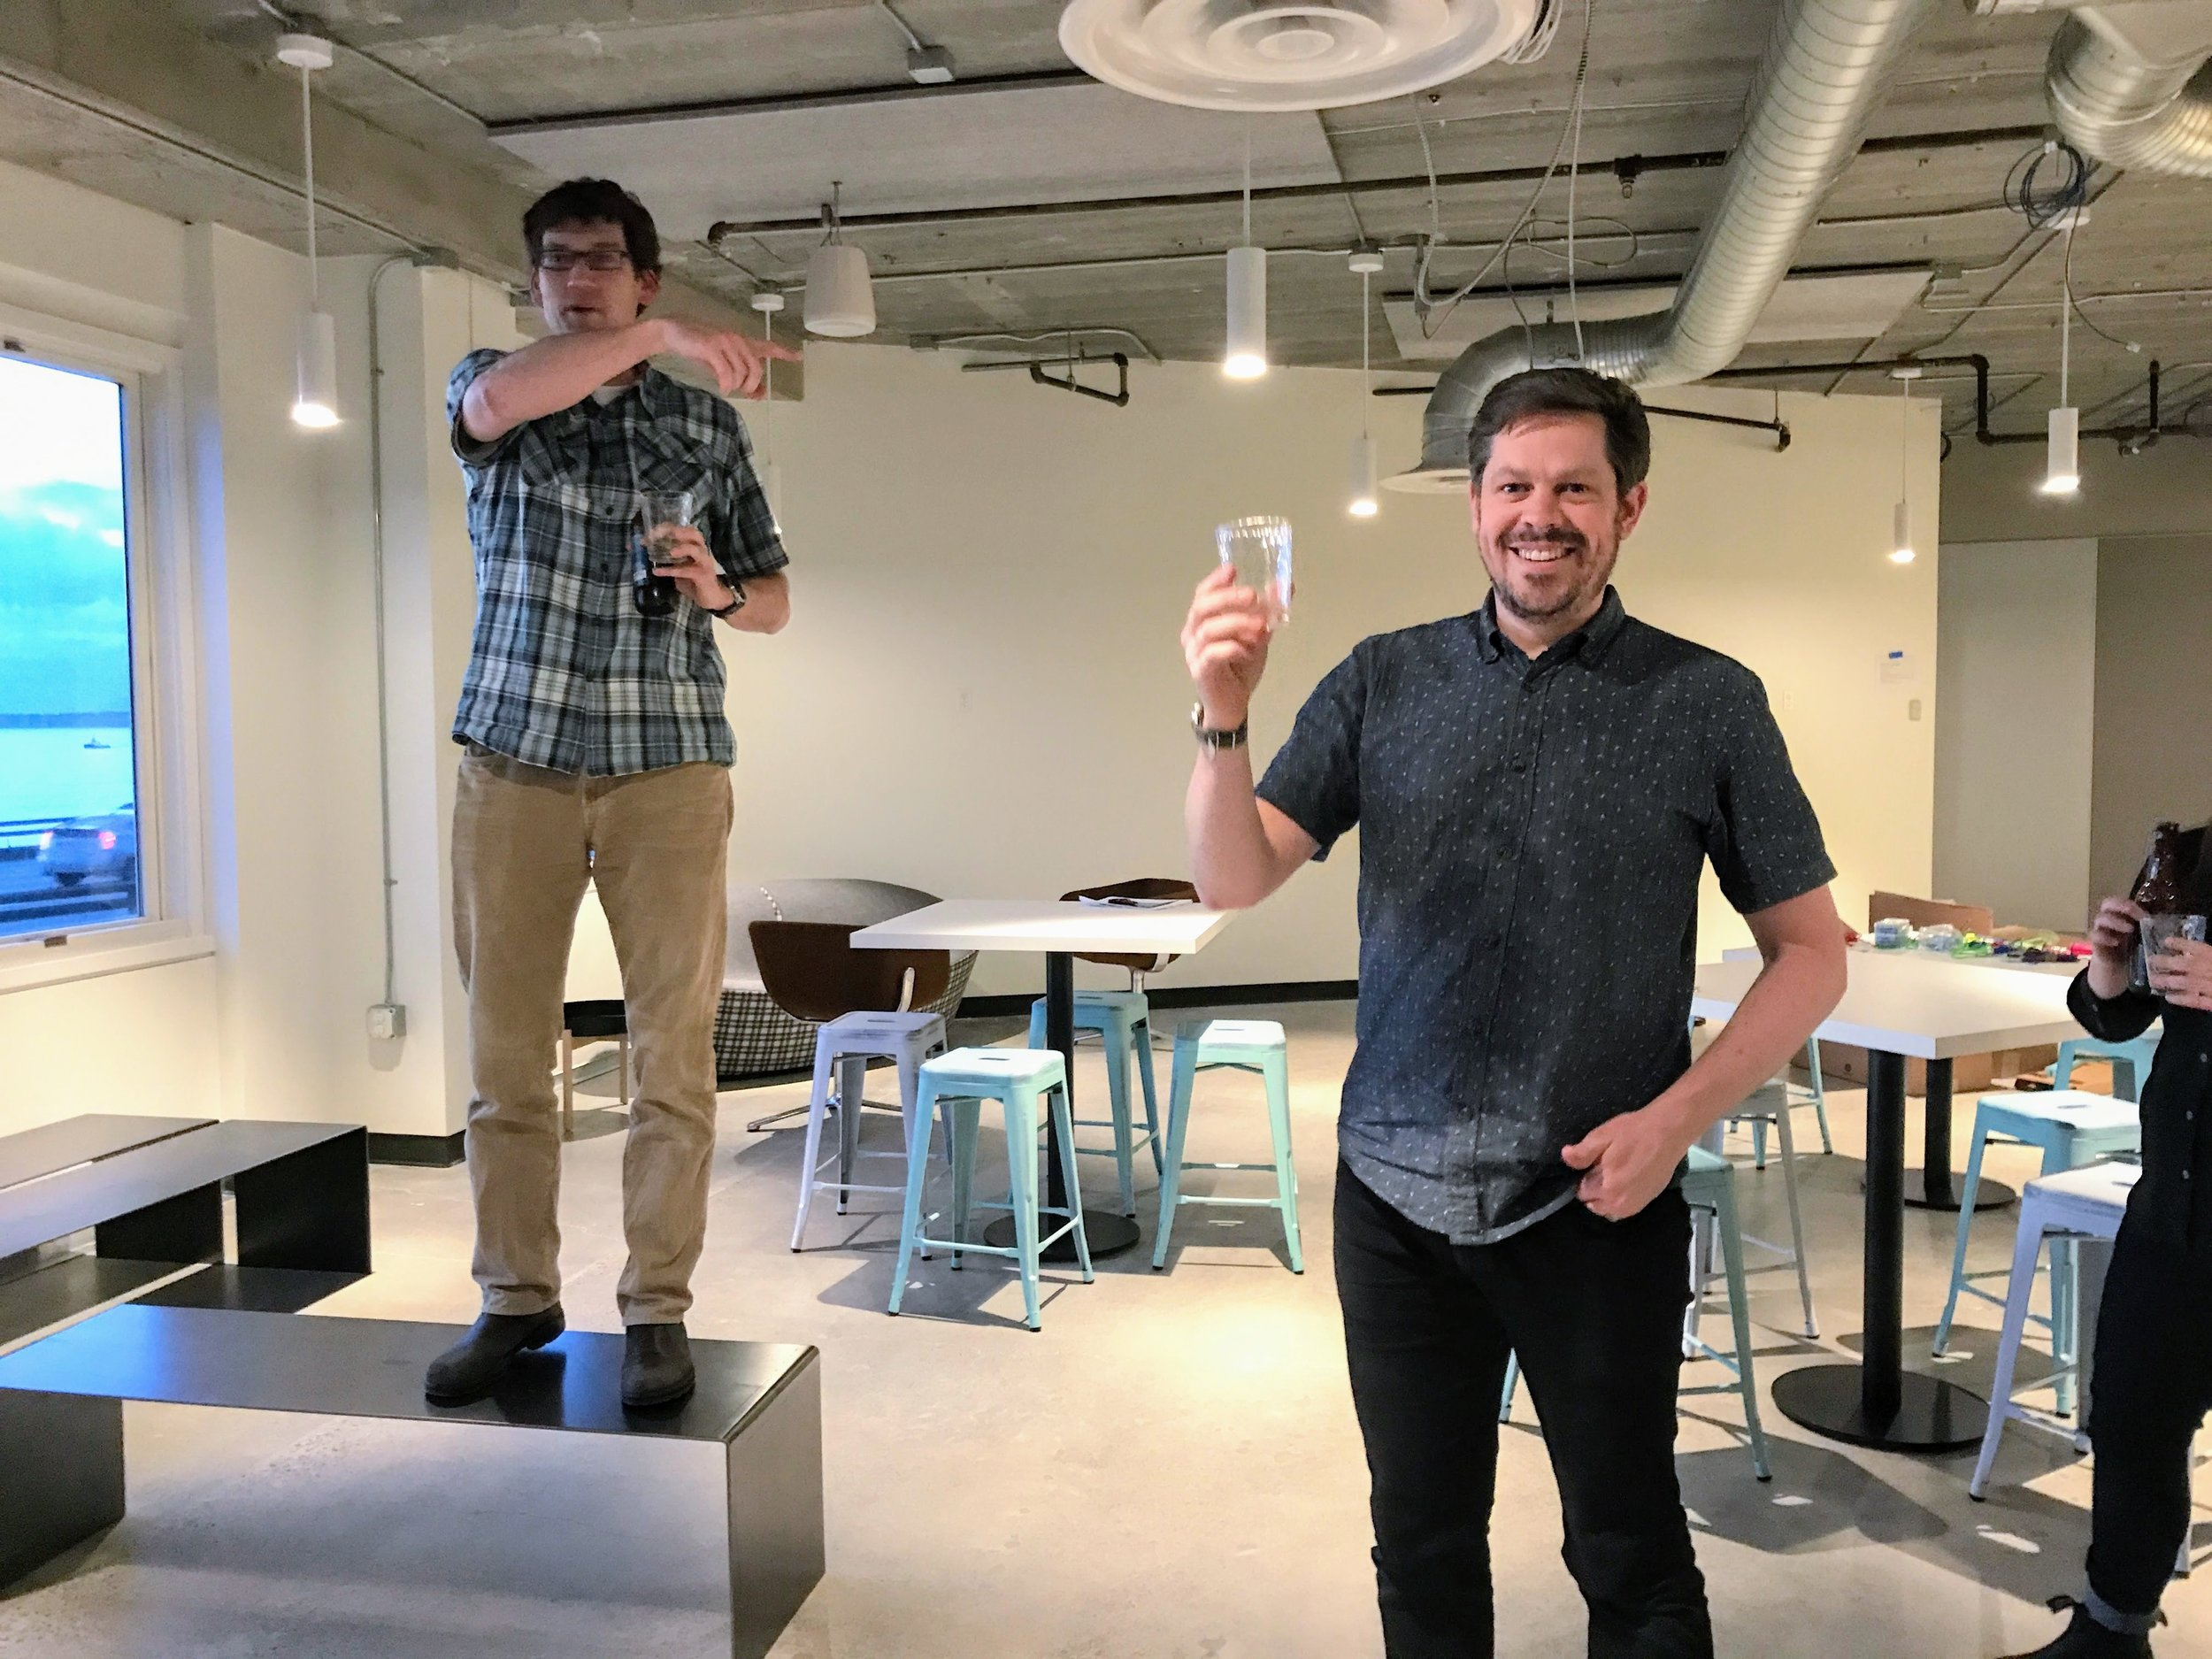 Geoff Harrison, Head of UX Services & Partner, announcing my new title. Cheers!